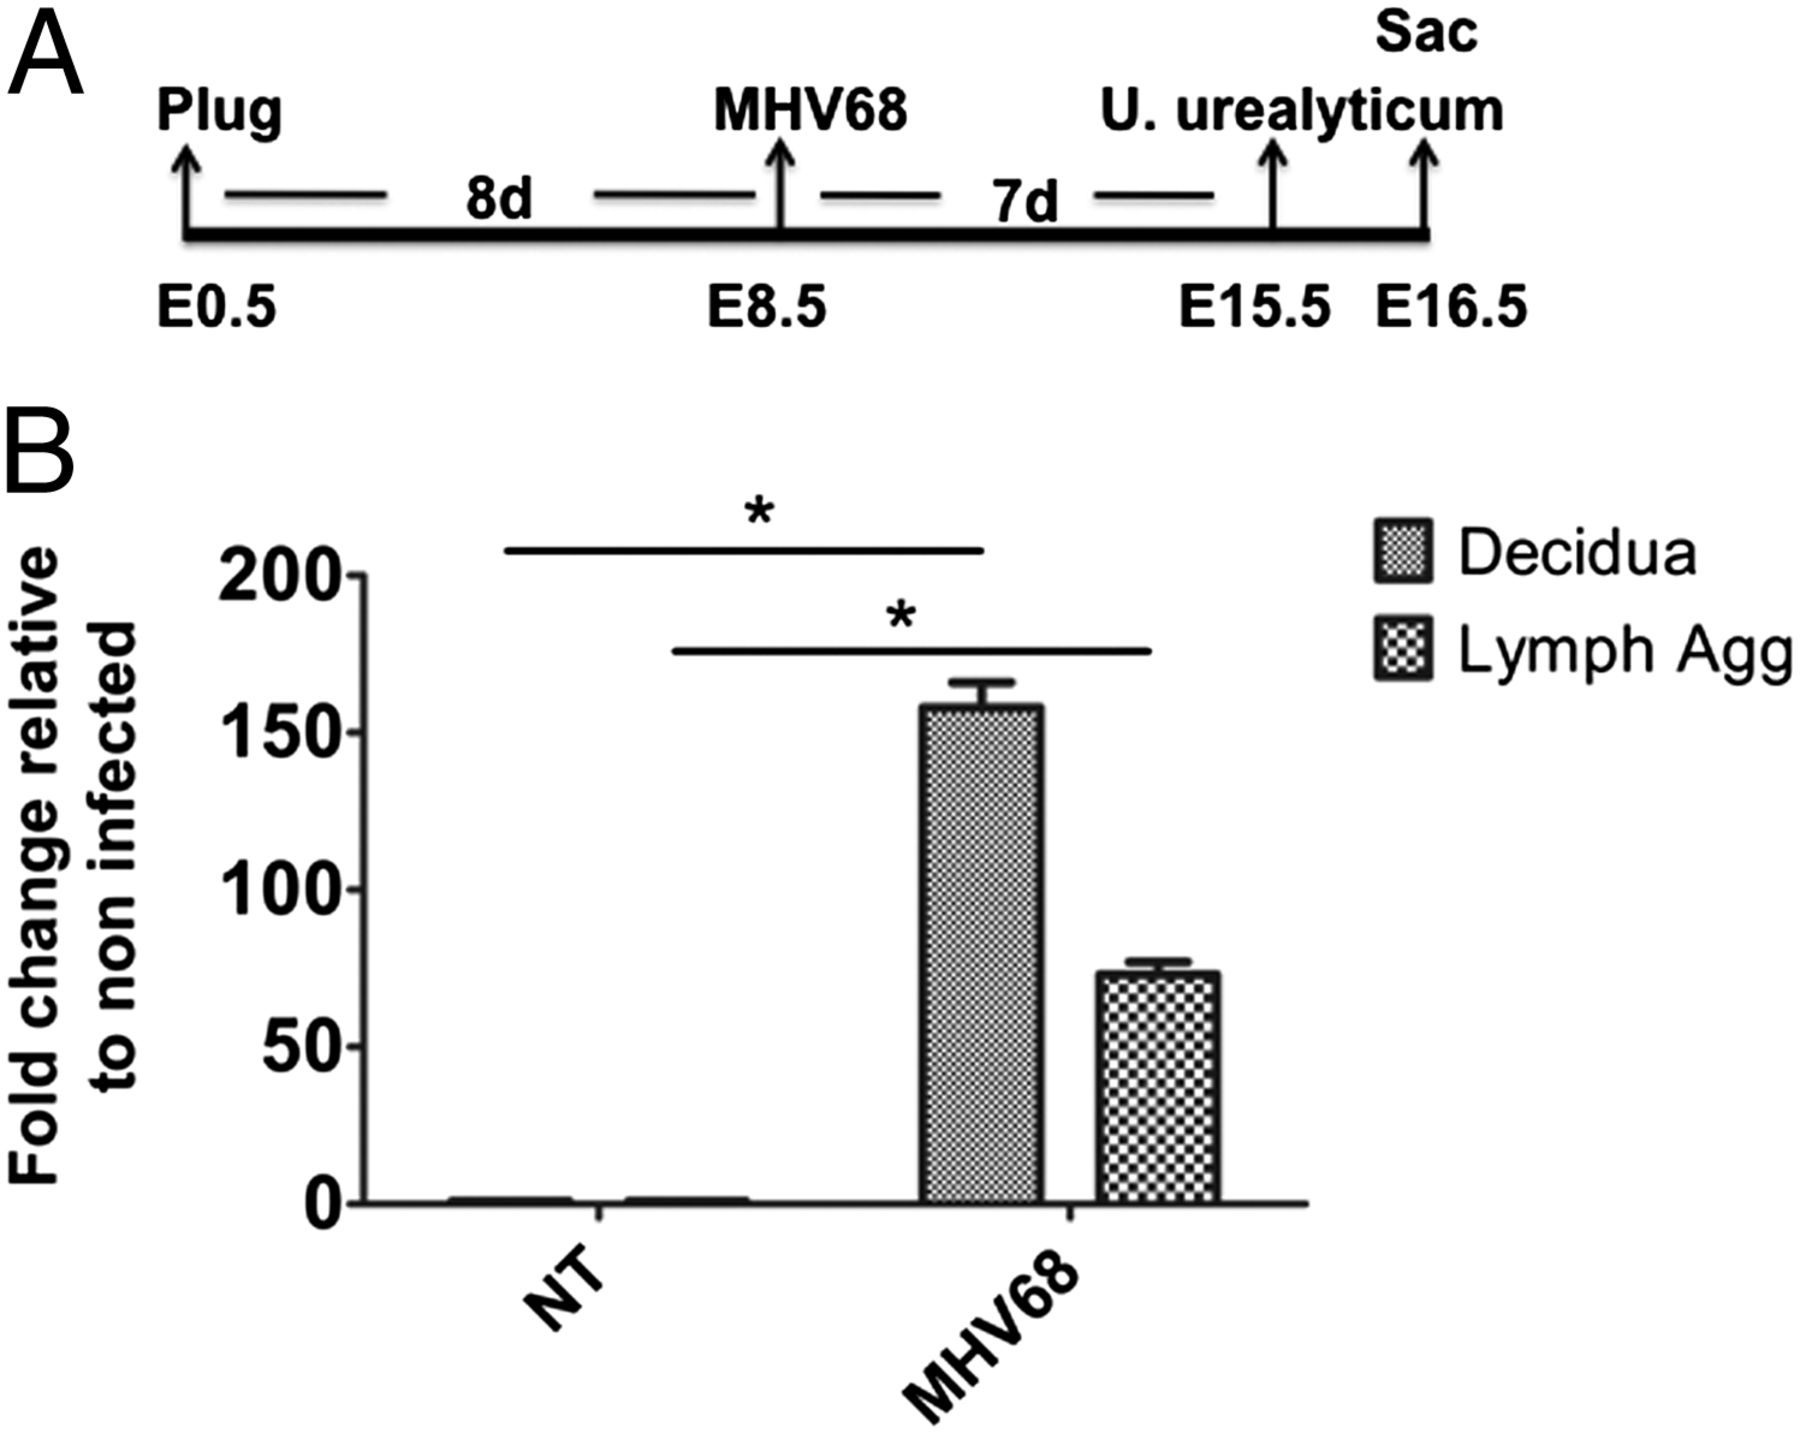 Viral Infection Of The Pregnant Cervix Predisposes To Ascending